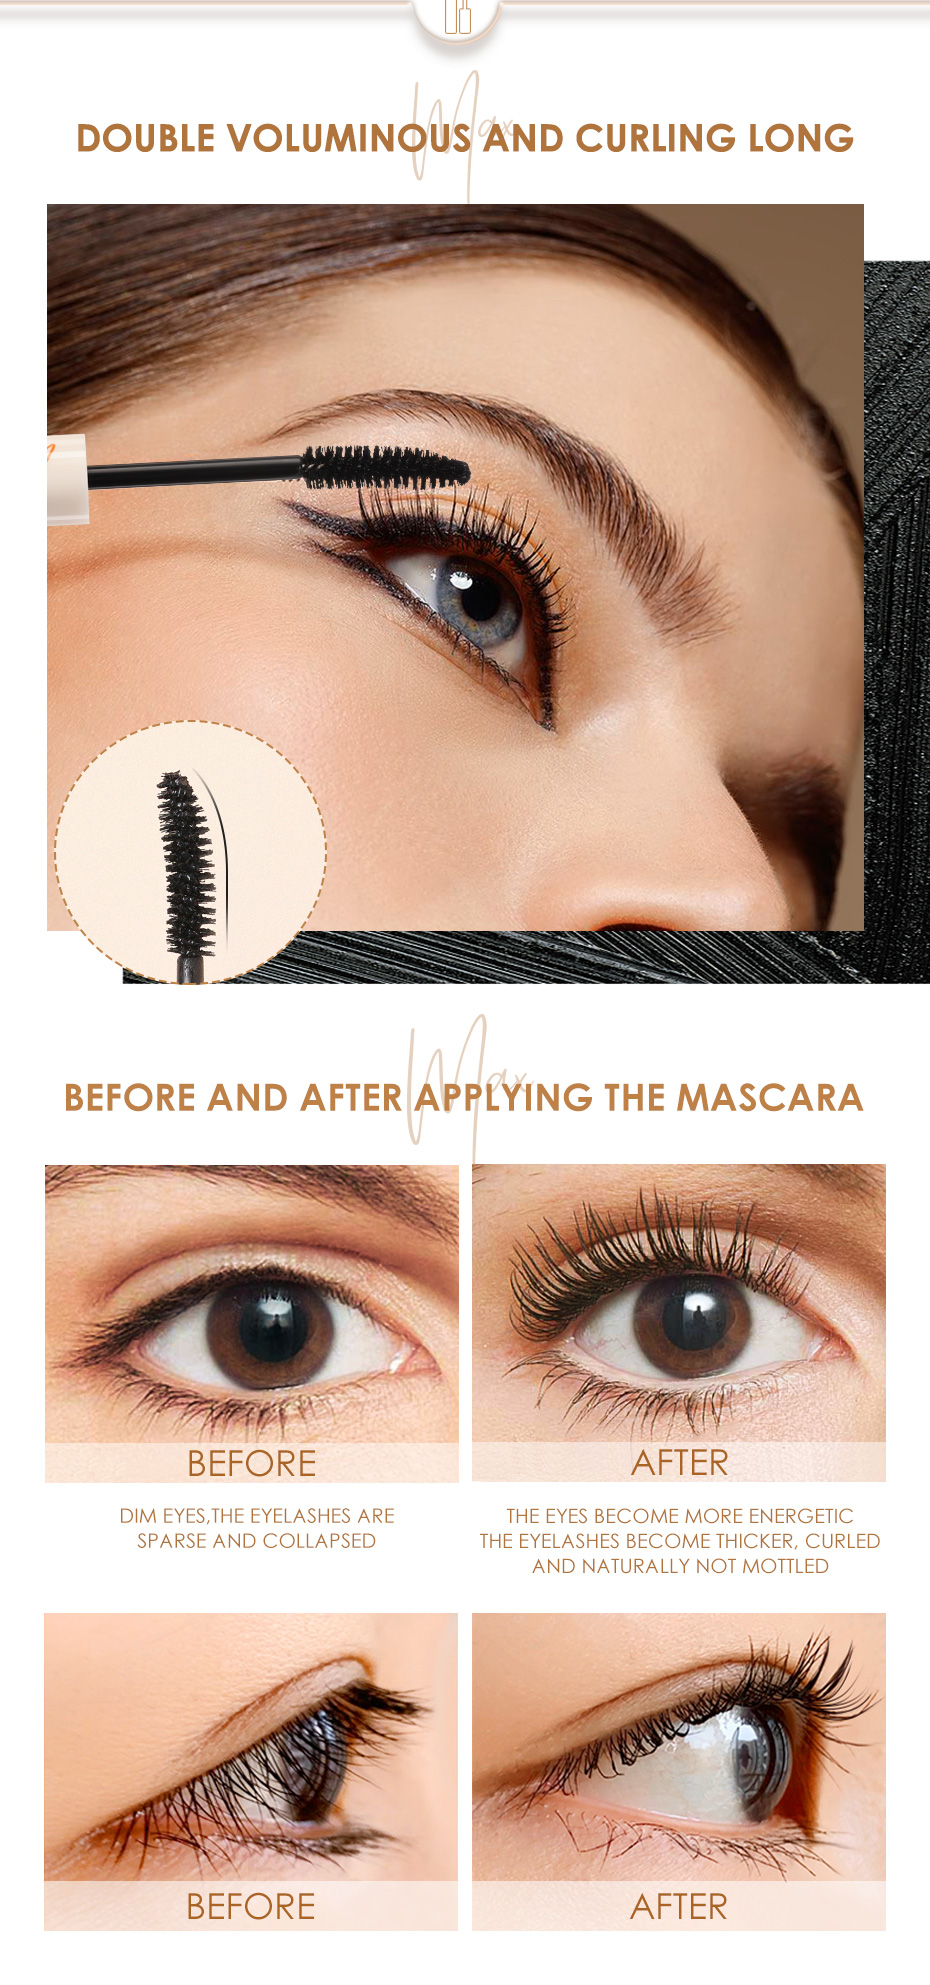 FOCALLURE Black Mascara Eyelashes Curling Thick Makeup Lengthening Eyelashes Makeup Waterproof Mascara Cosmetics